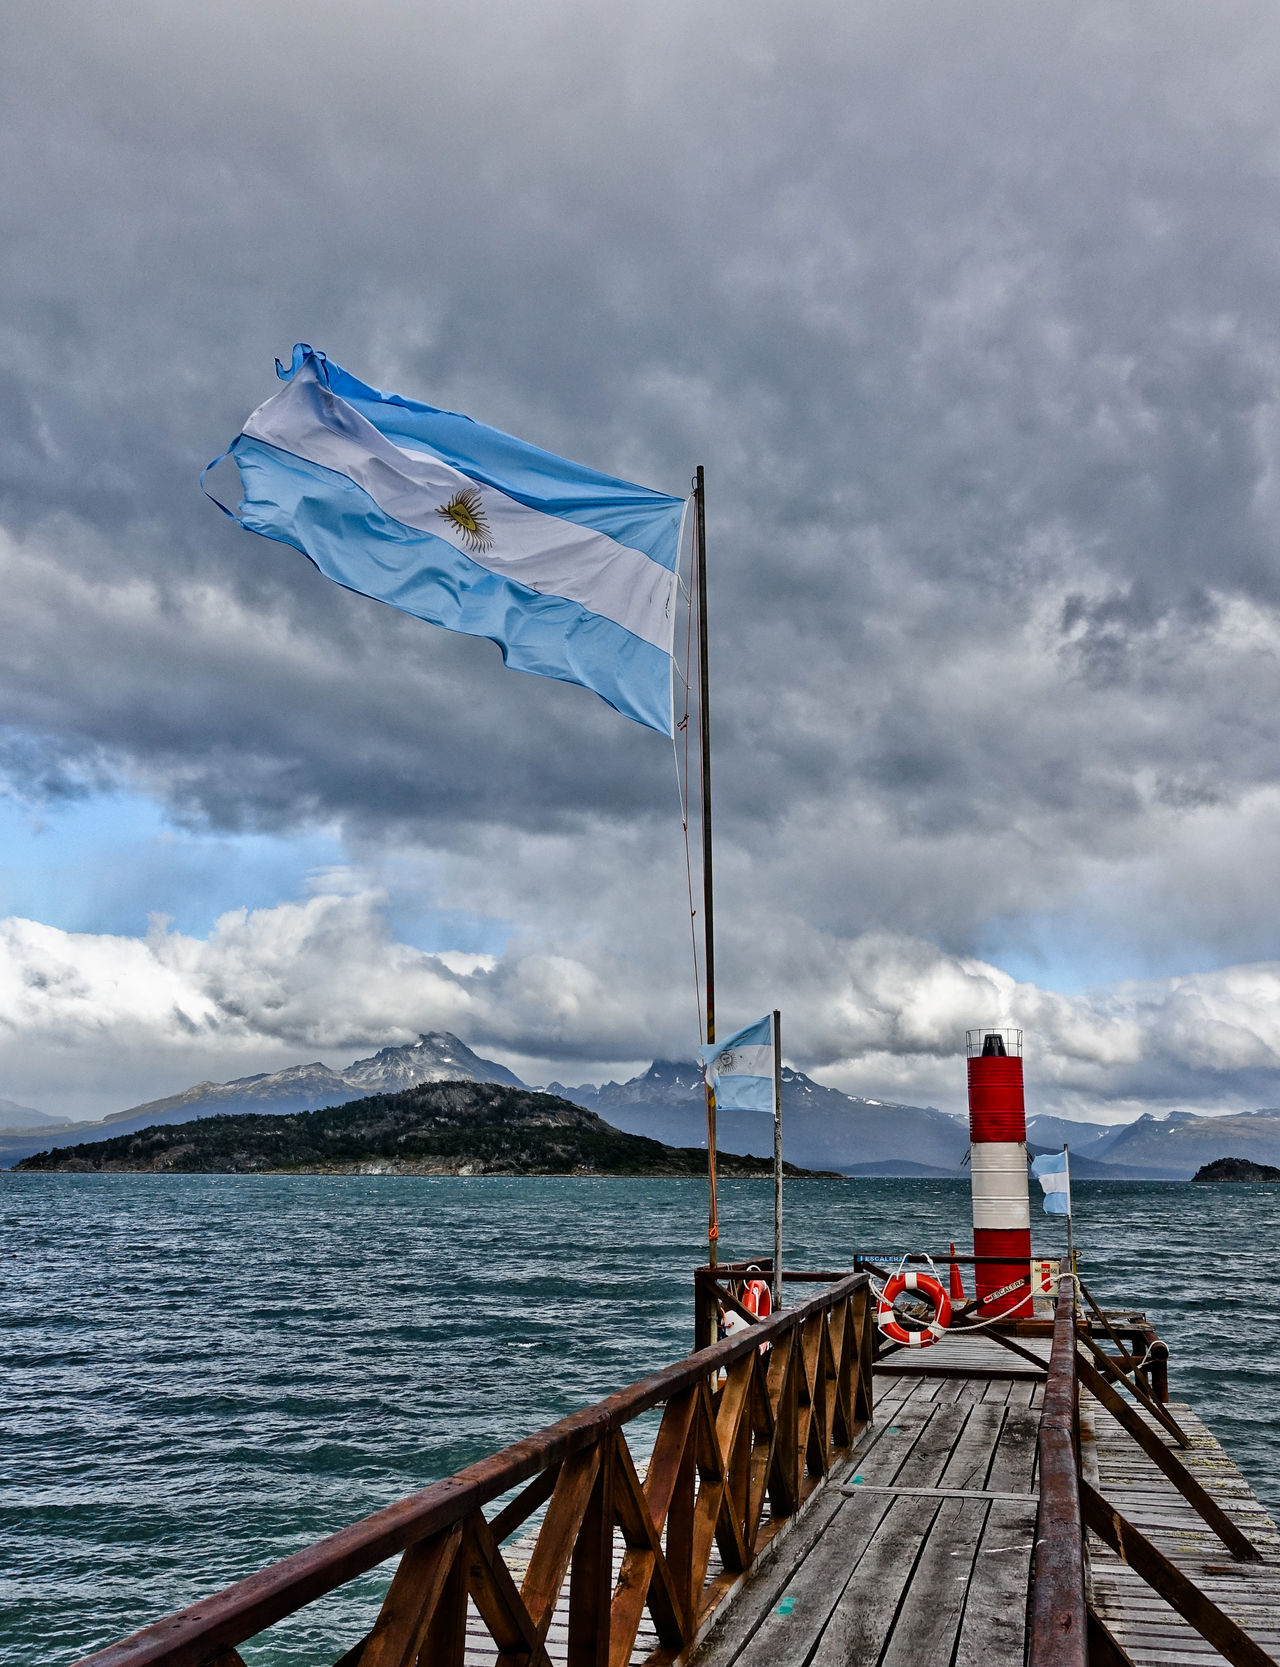 Architecture Beauty In Nature Cloud - Sky Day Flag Mountain Mountains Nature Nautical Vessel No People Outdoors Pier Scenics Sea Sky Tierra Del Fuego Tranquility Ushuaïa Water